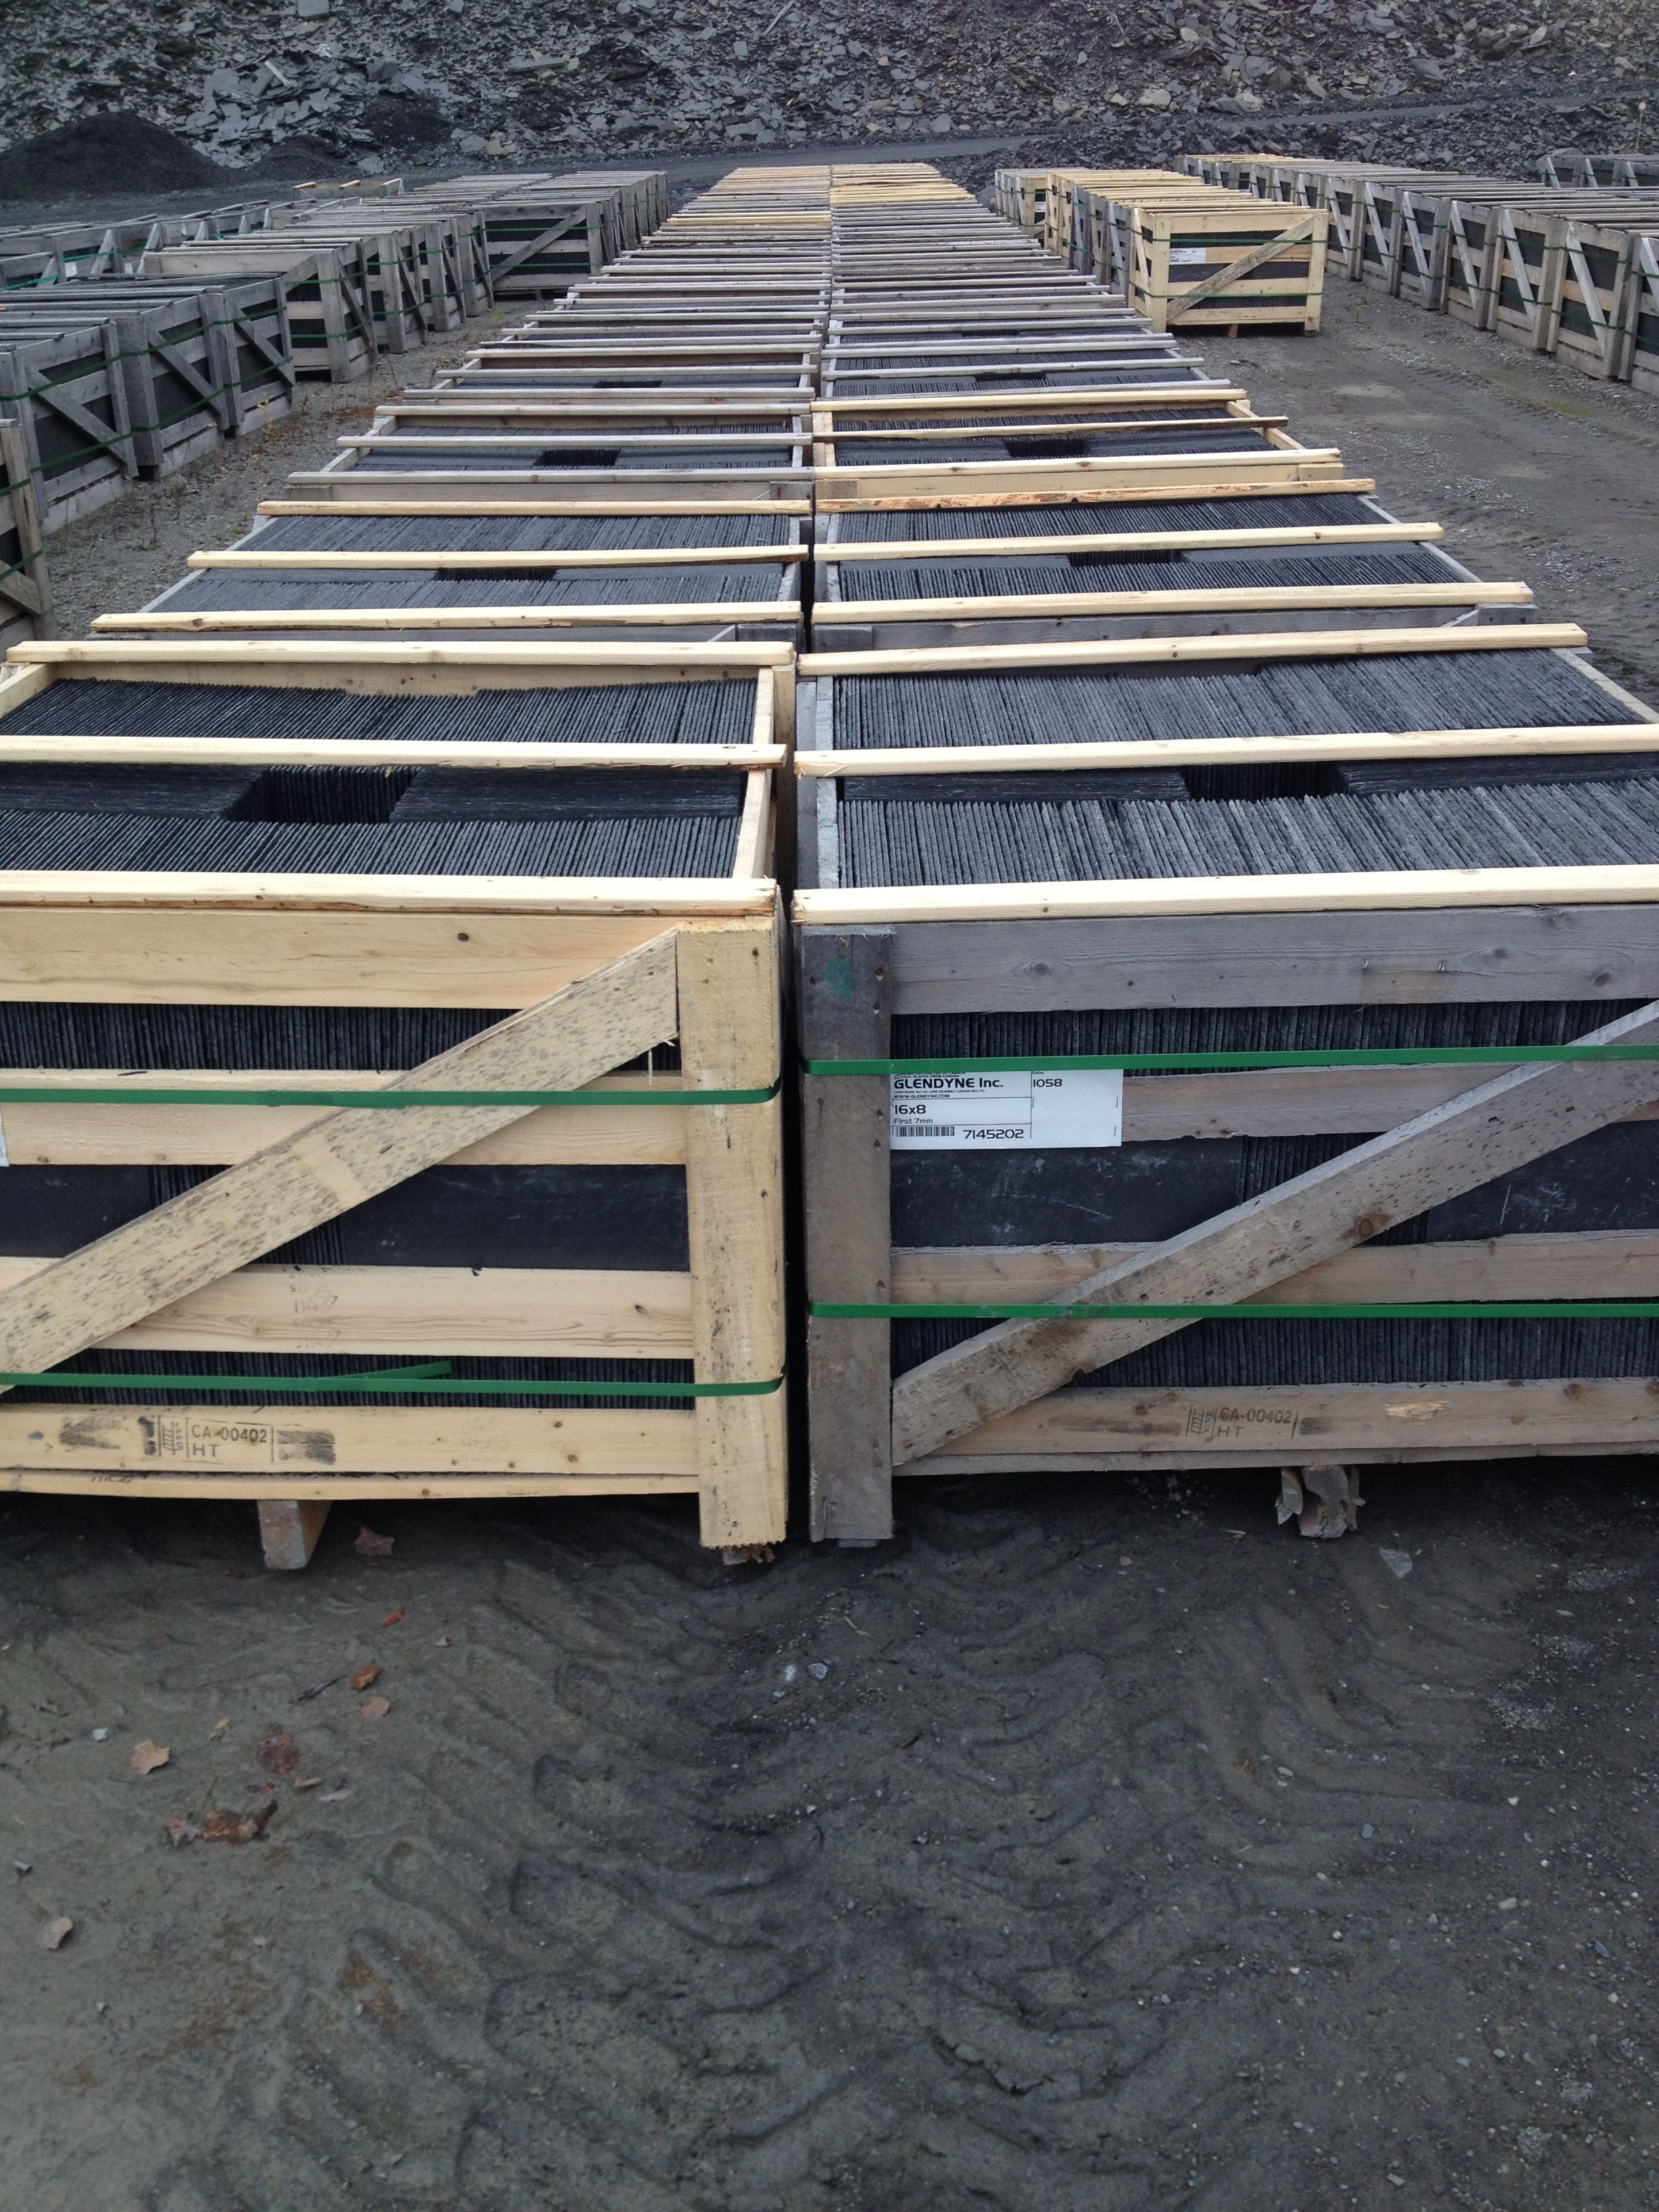 Pallets Ready For Shipping Slate Pallets Can Weigh Between 3000 To 3500 Lbs Each Each Pallet Holds 3 To 3 12 Squares Of Roo Slate Roof Roofing North Country